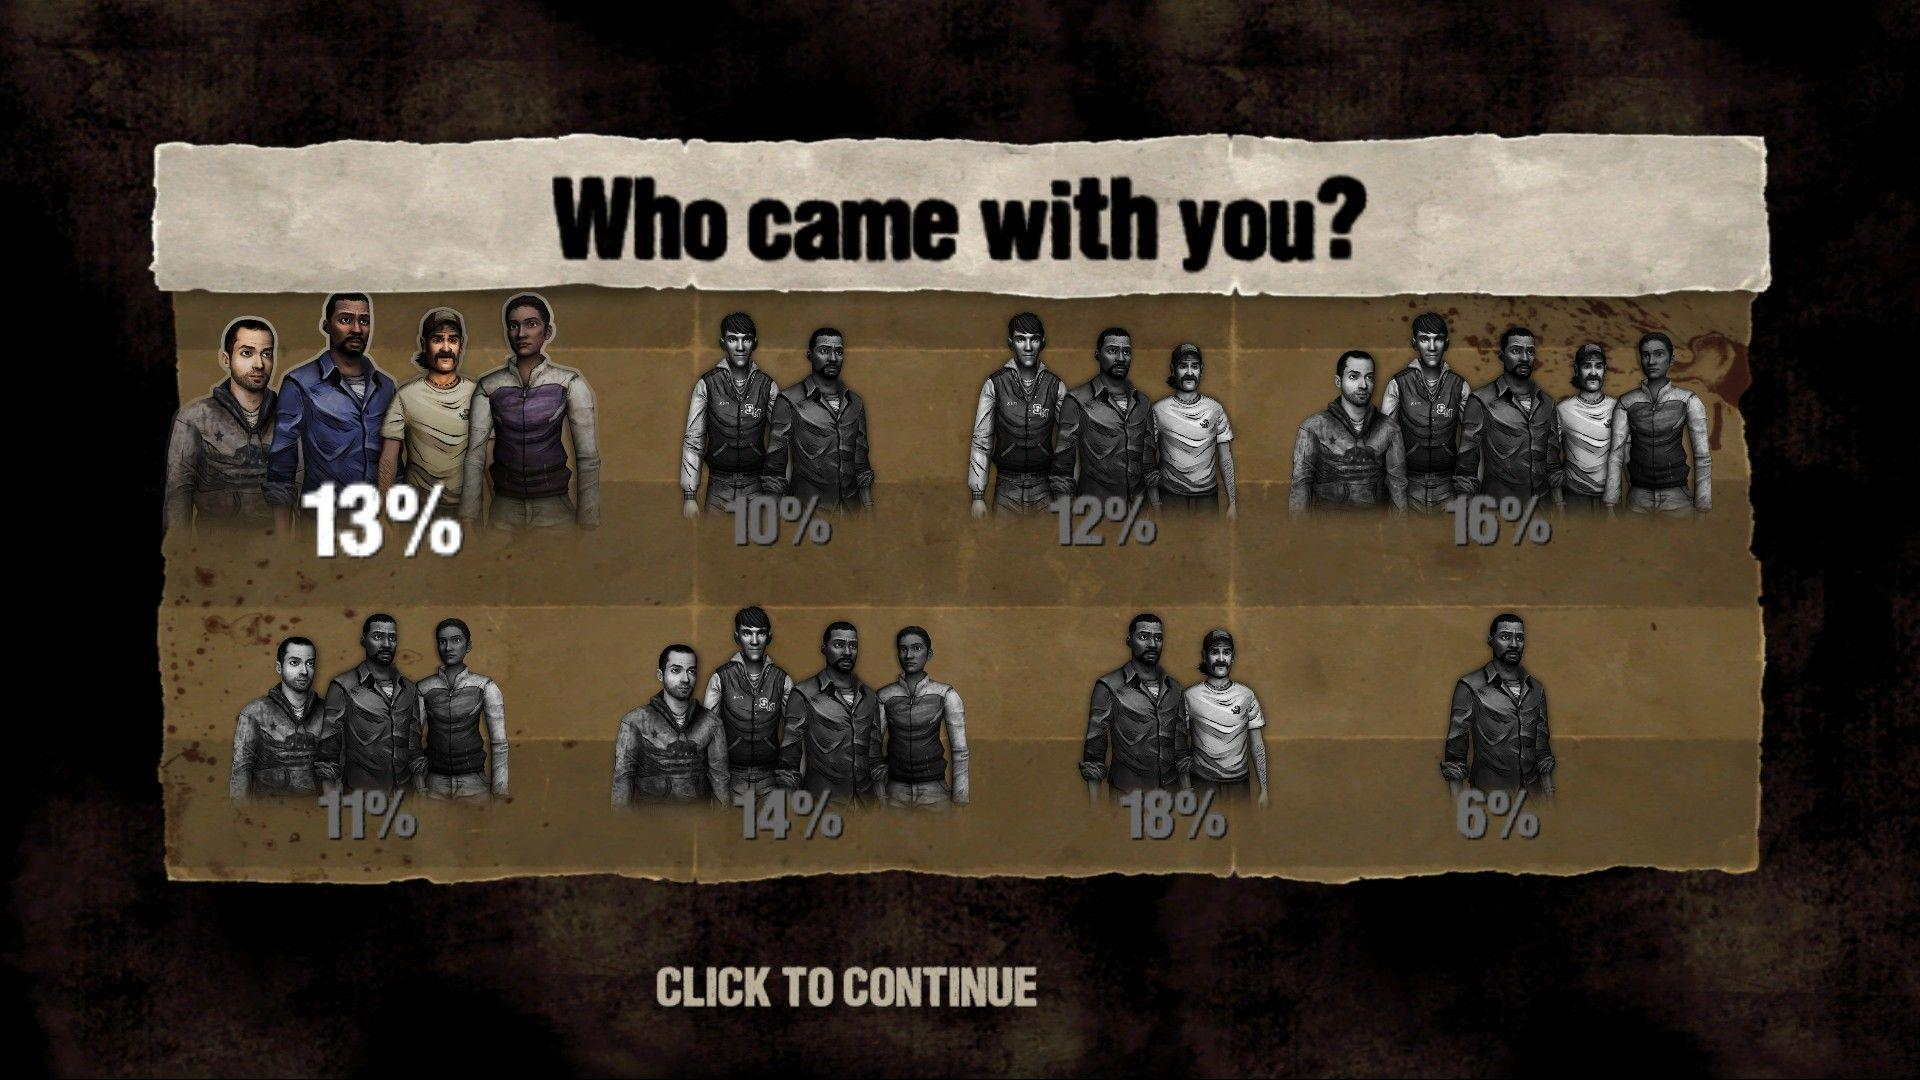 The walking dead ps3 game wallpapers wallchips com | ImgStocks.com